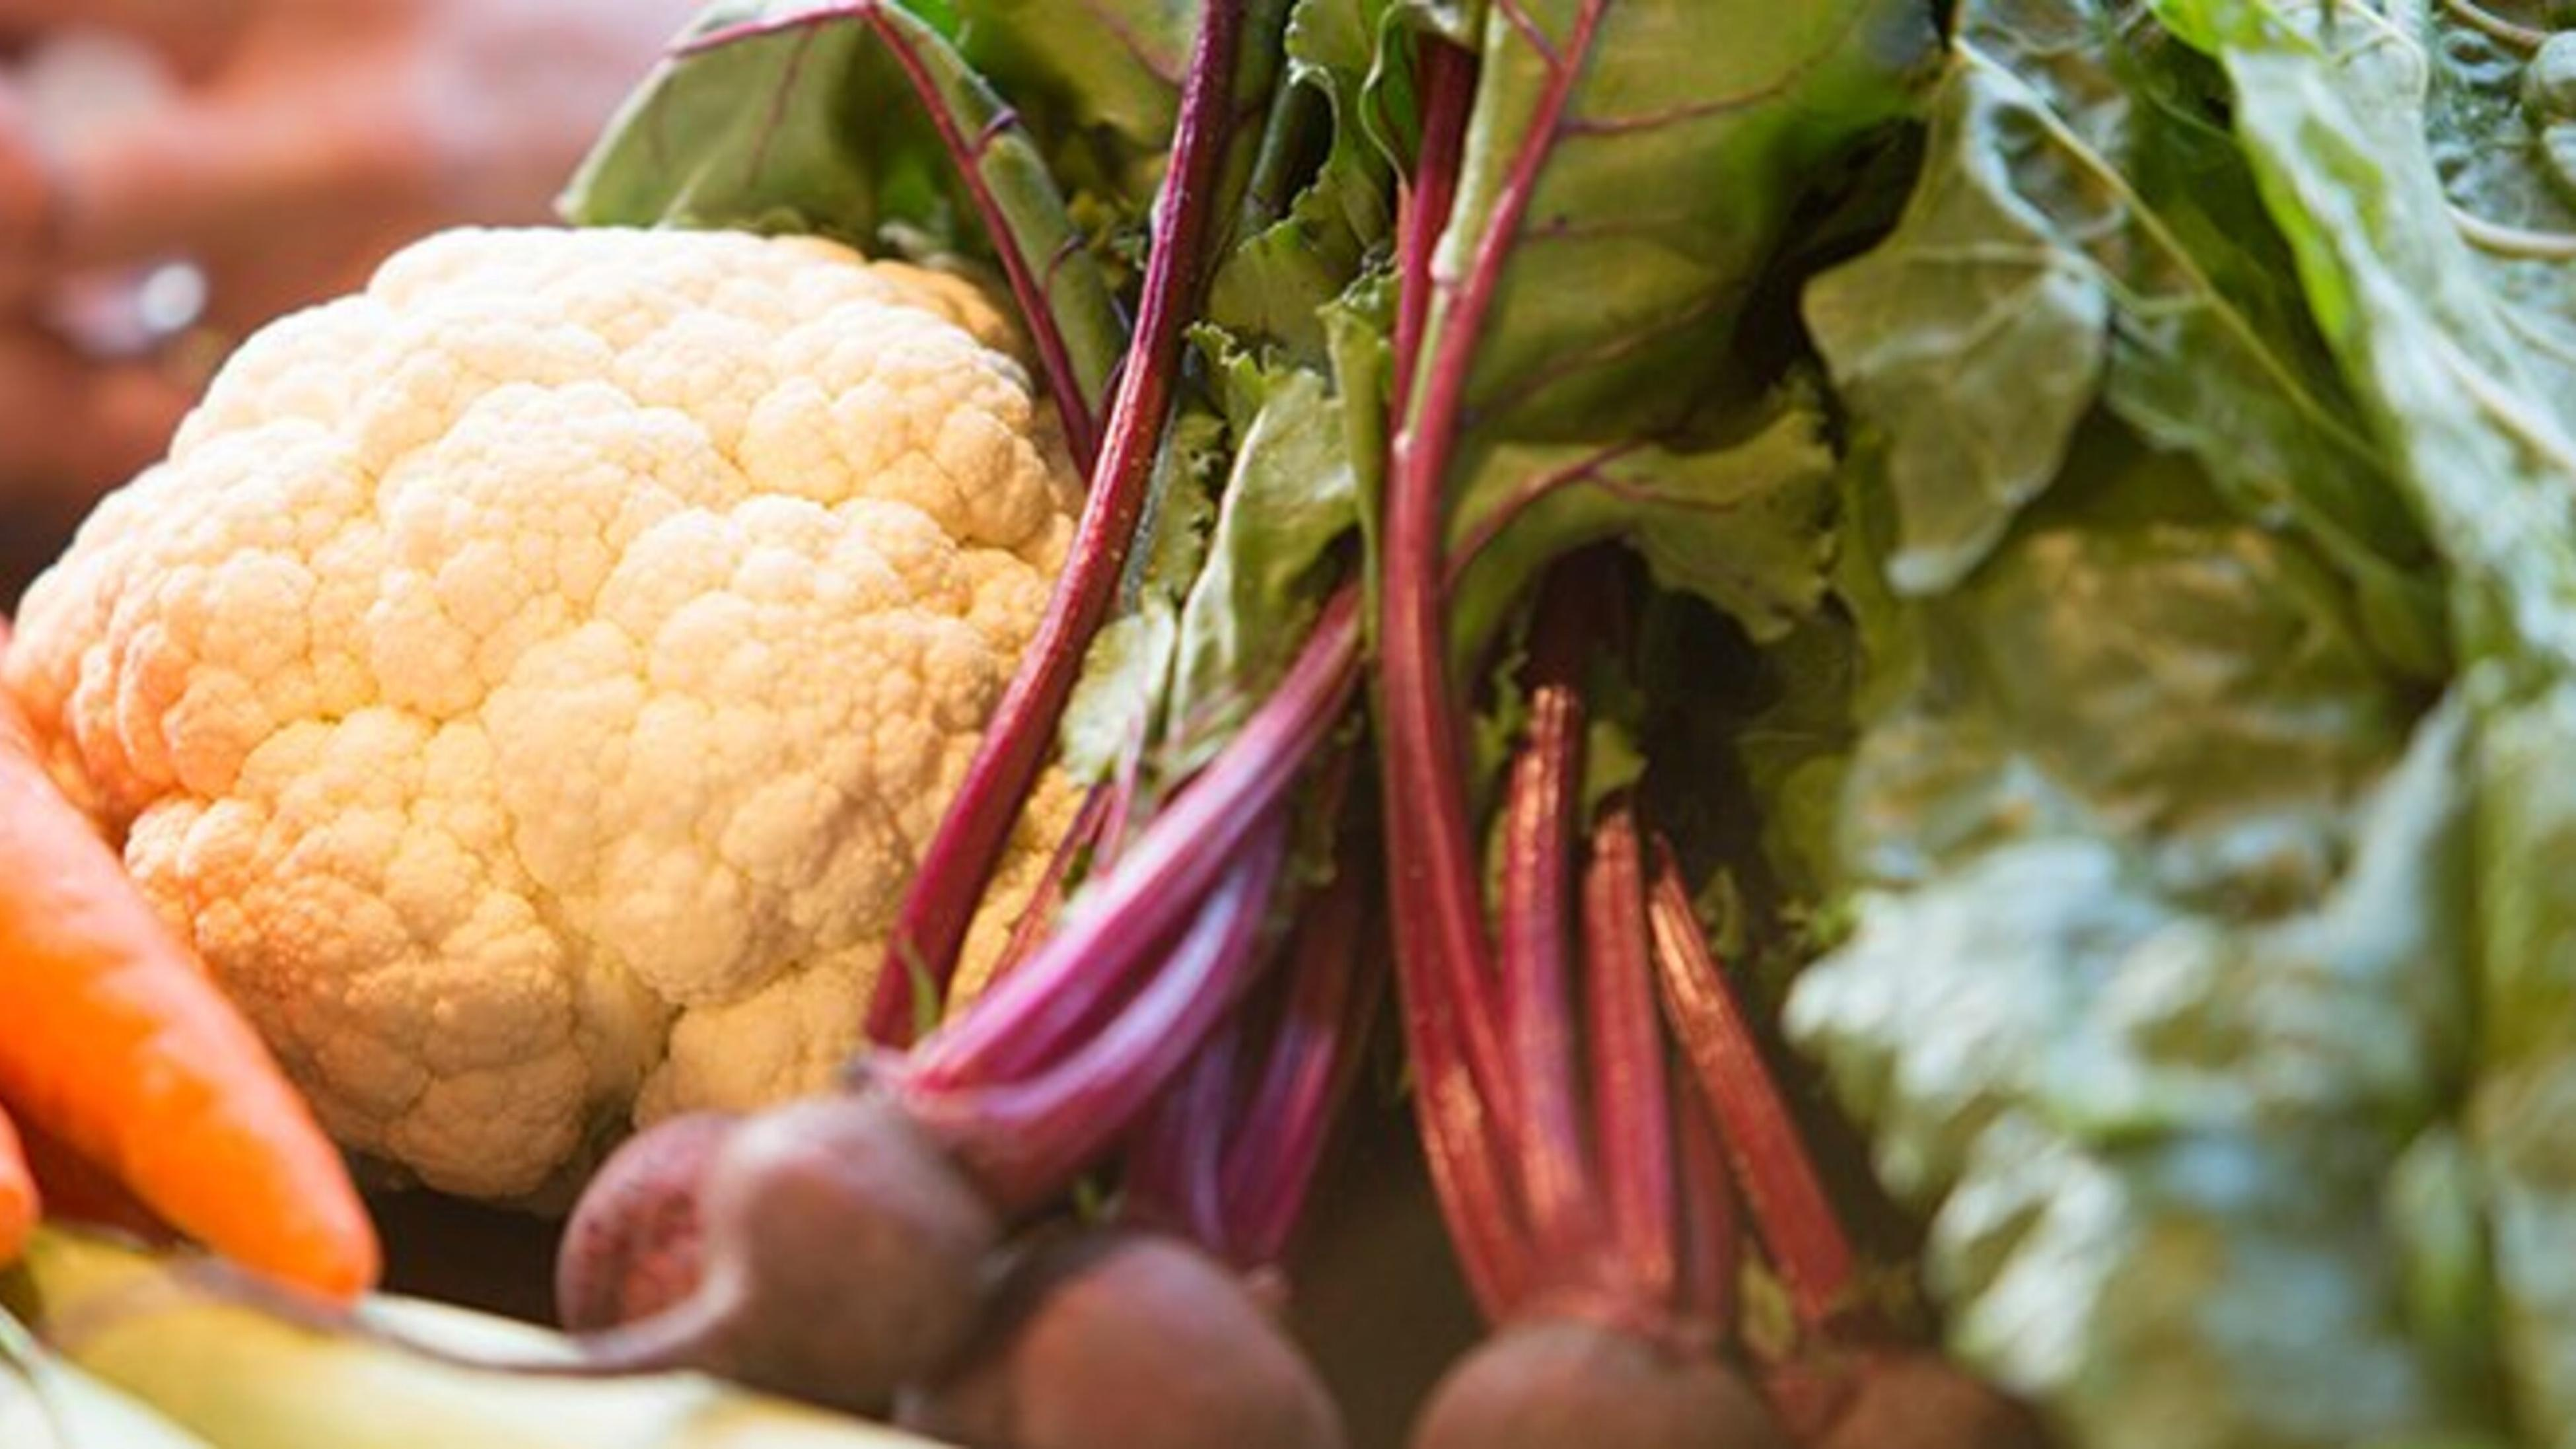 Harvested vegetables, including cauliflower, beetroot and carrots.